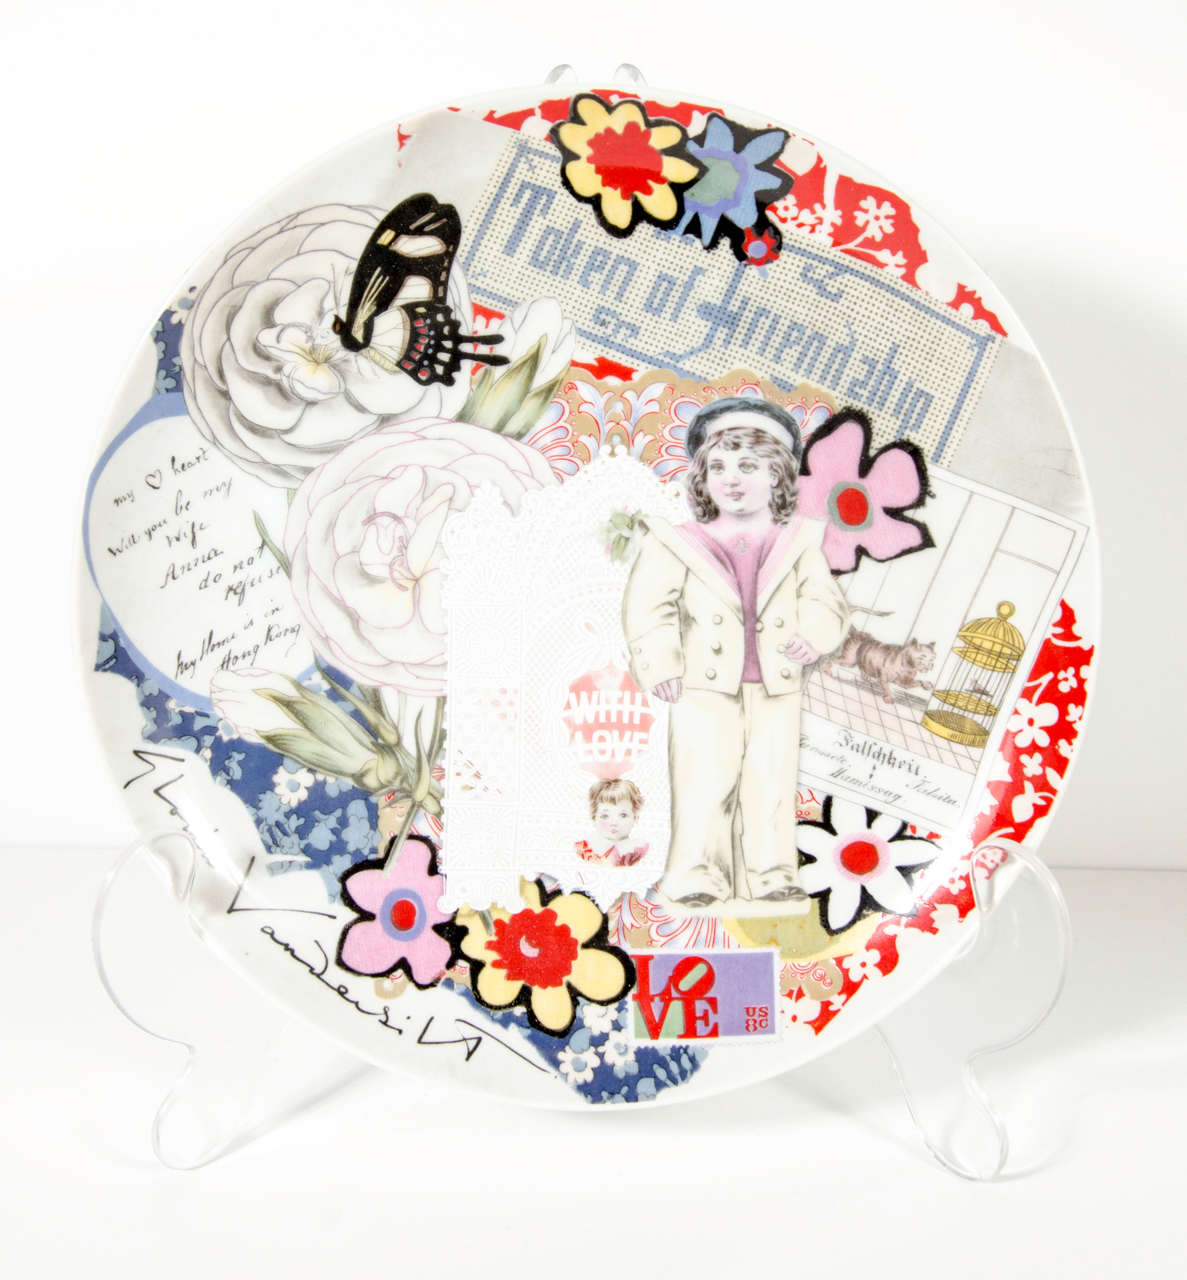 This pop art plate features a collage of multi dimensional Artwork and cations featuring the signature of Gloria Vanderbilt. Shown on a lucite stand and would add style and sophistication to any room.